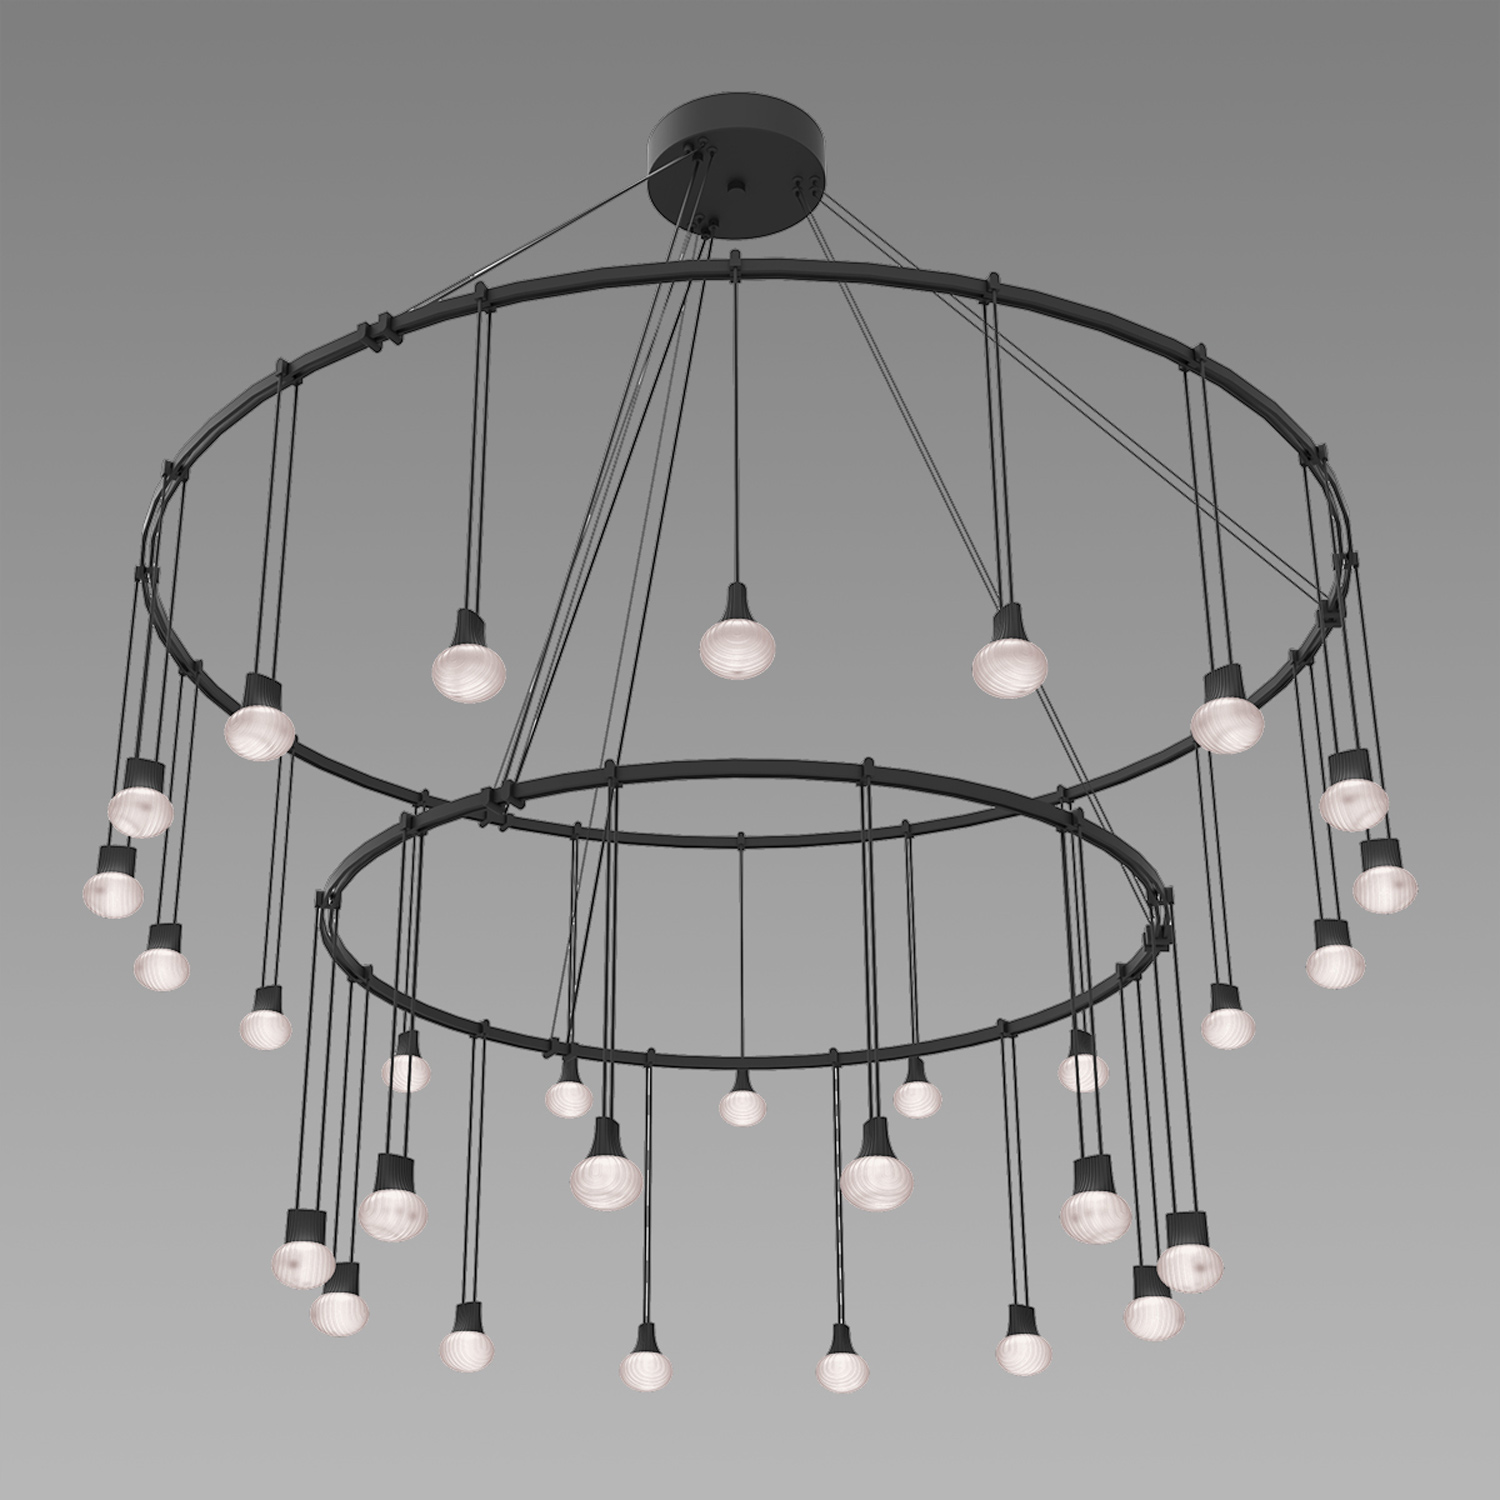 double ring pendant by sonneman  a way of light  sfkscxx  - suspenders double ring pendant by sonneman  a way of light sfkscxxrp